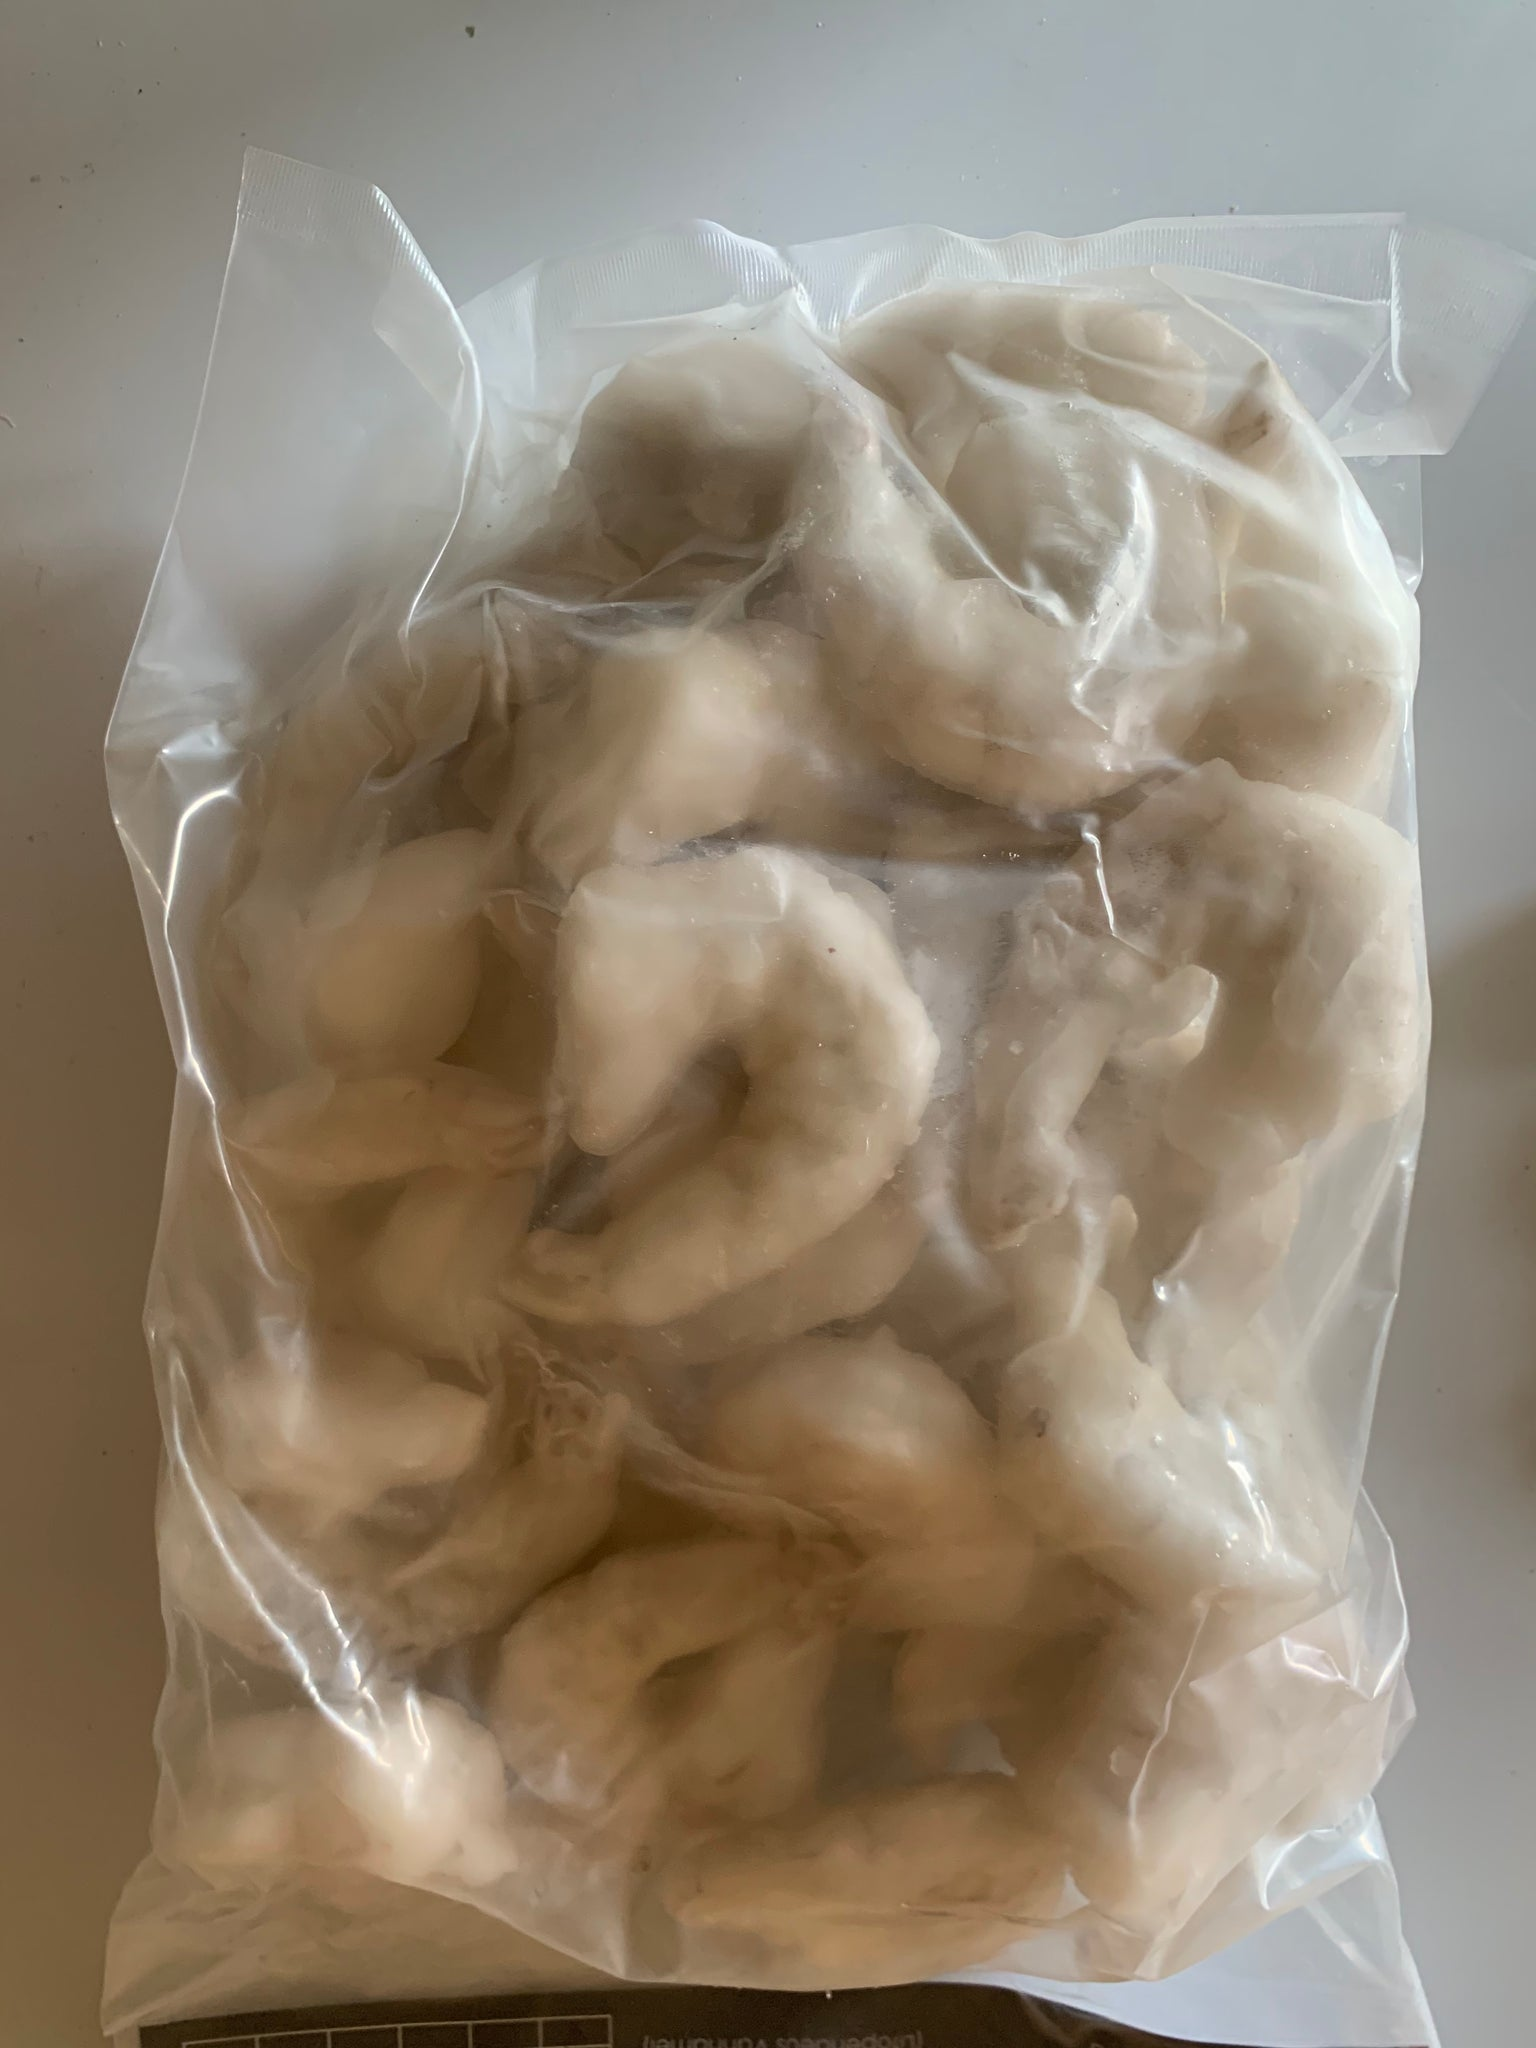 King prawns peeled de veined 1kg bag (Frozen) - HGFD Produce